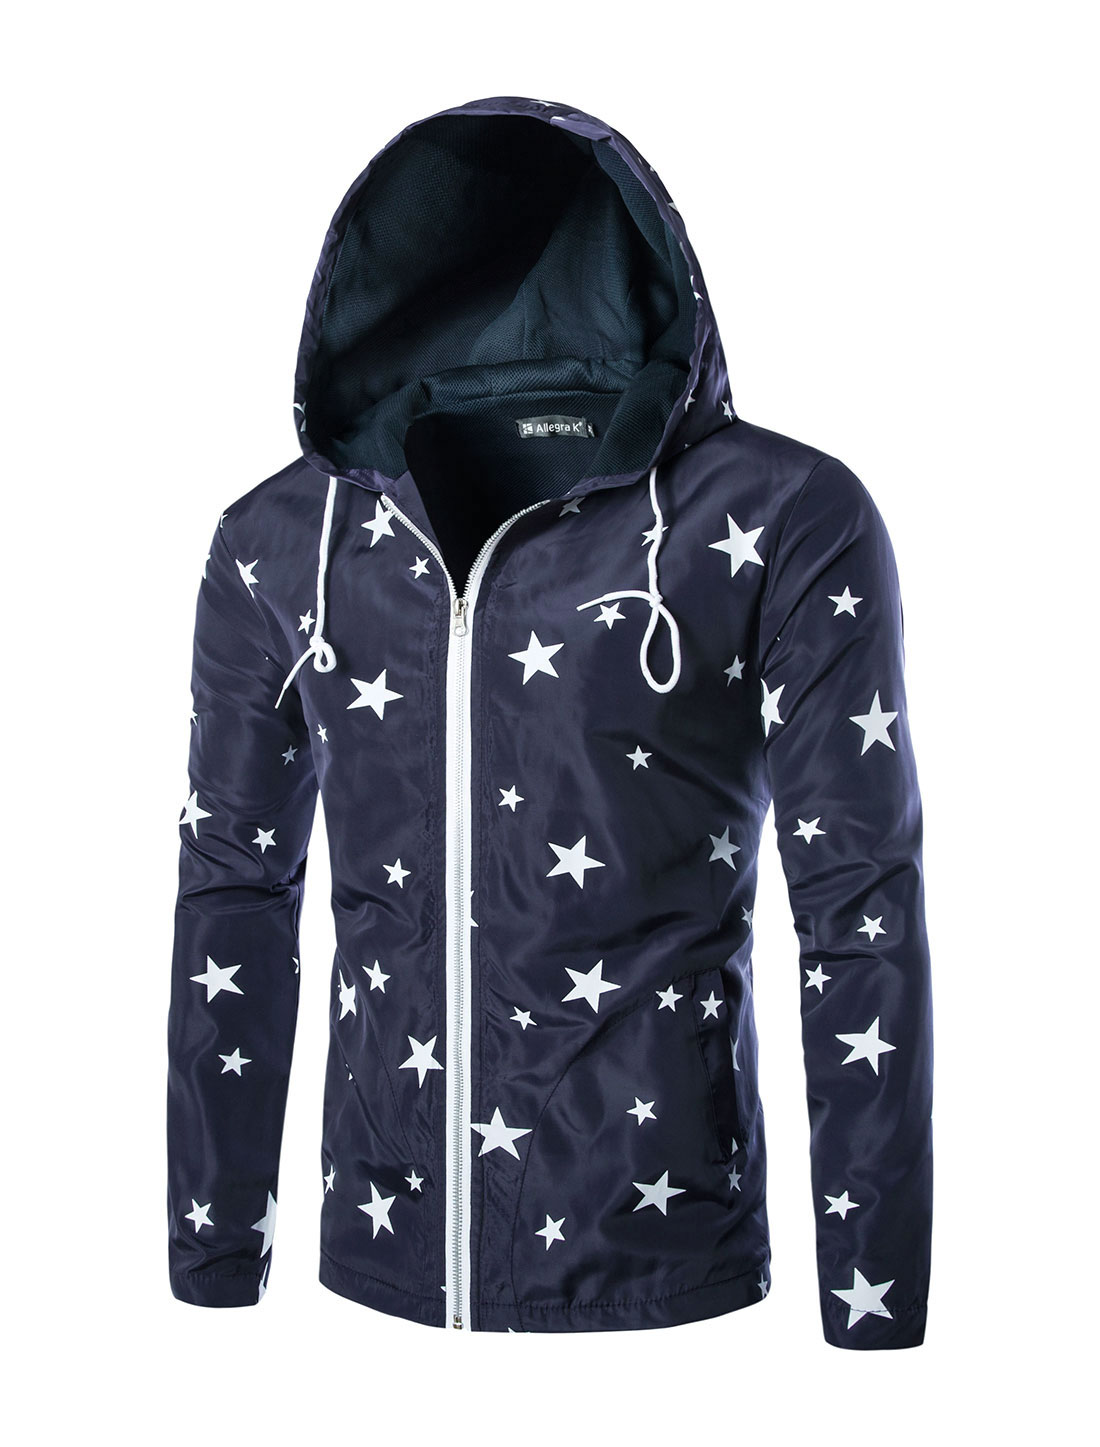 Men Long Sleeve Stars Zipper Front Windbreaker Jacket Navy Blue L